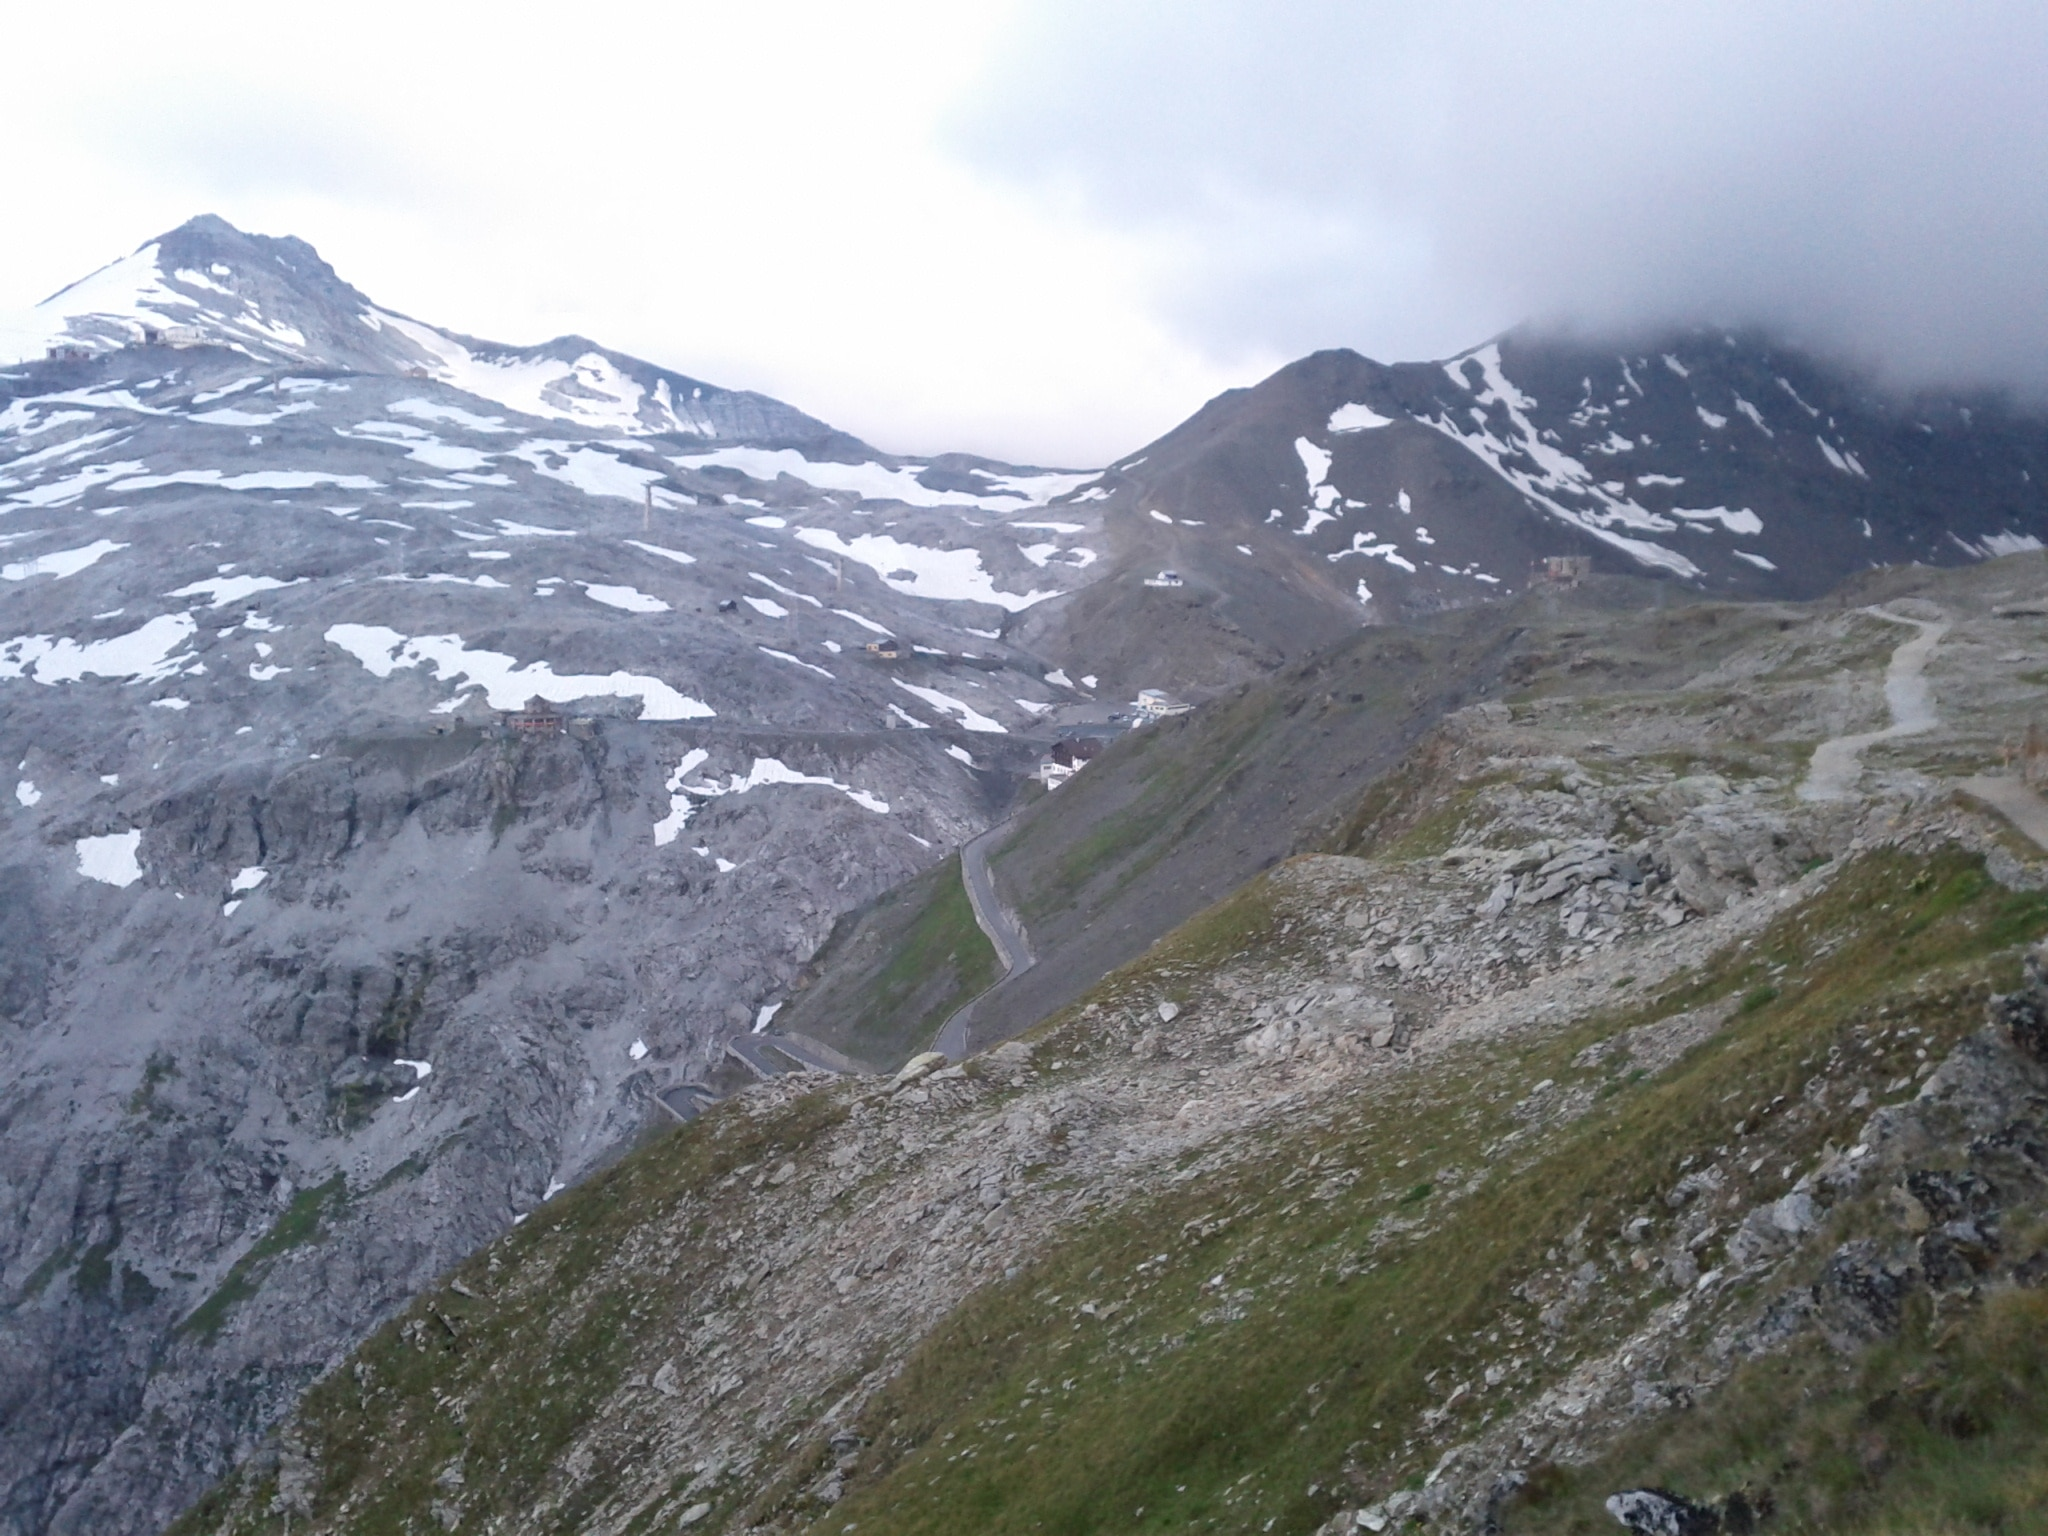 Approachin​g Stelvio Pass, the highest pass road in the Alps